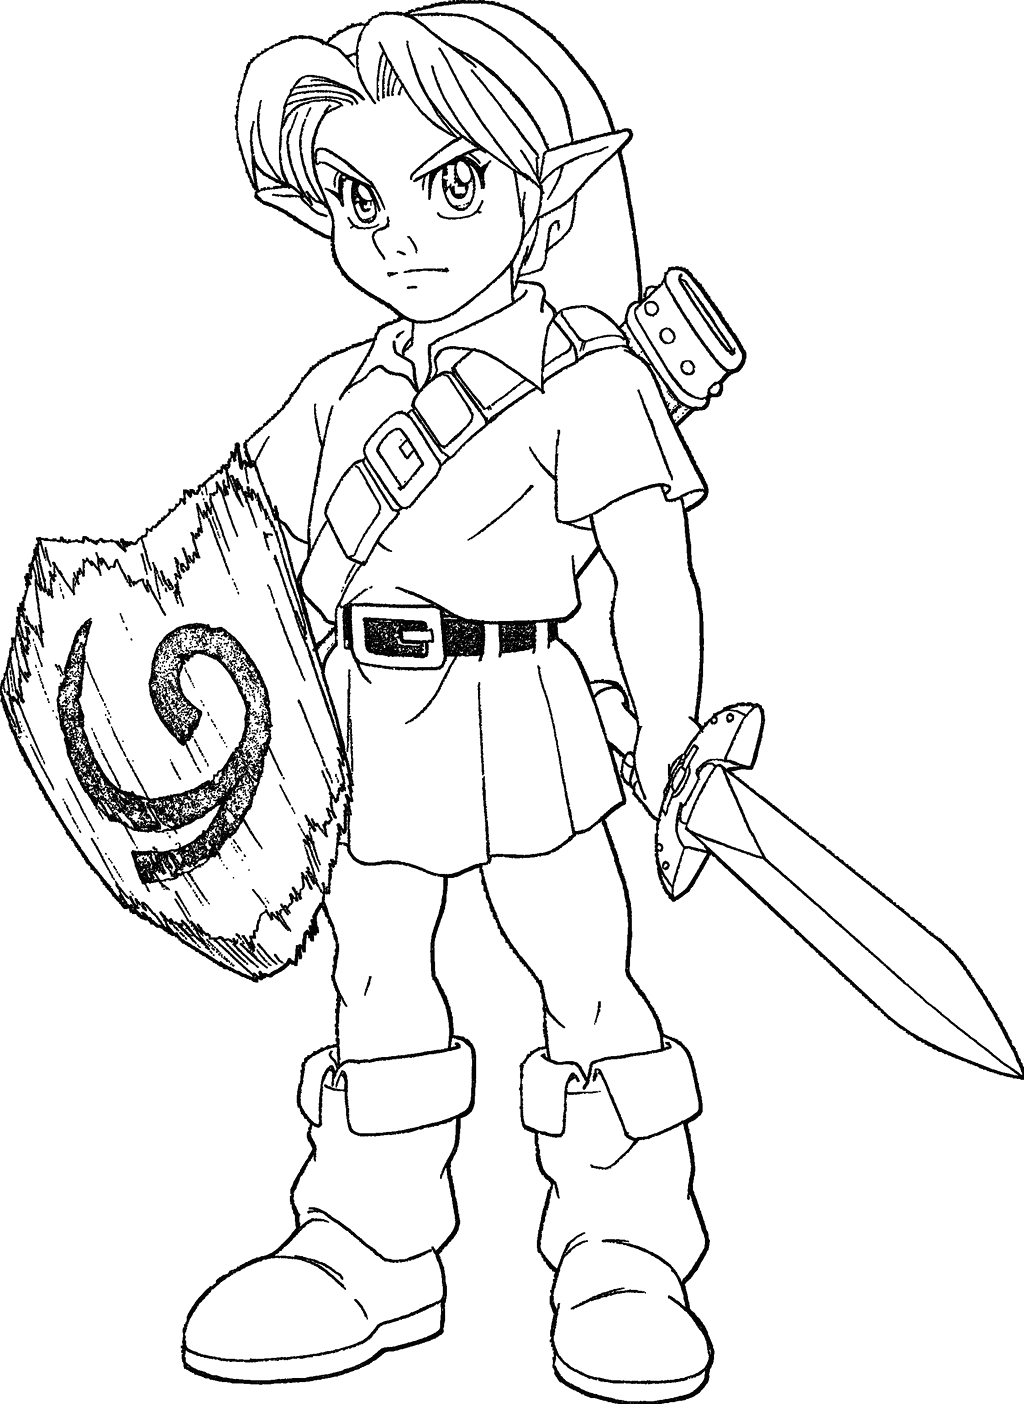 Legend Of Zelda Ocarina Of Time Coloring Pages Young Link Ocarina Of Time Lineart by Skylight1989 On